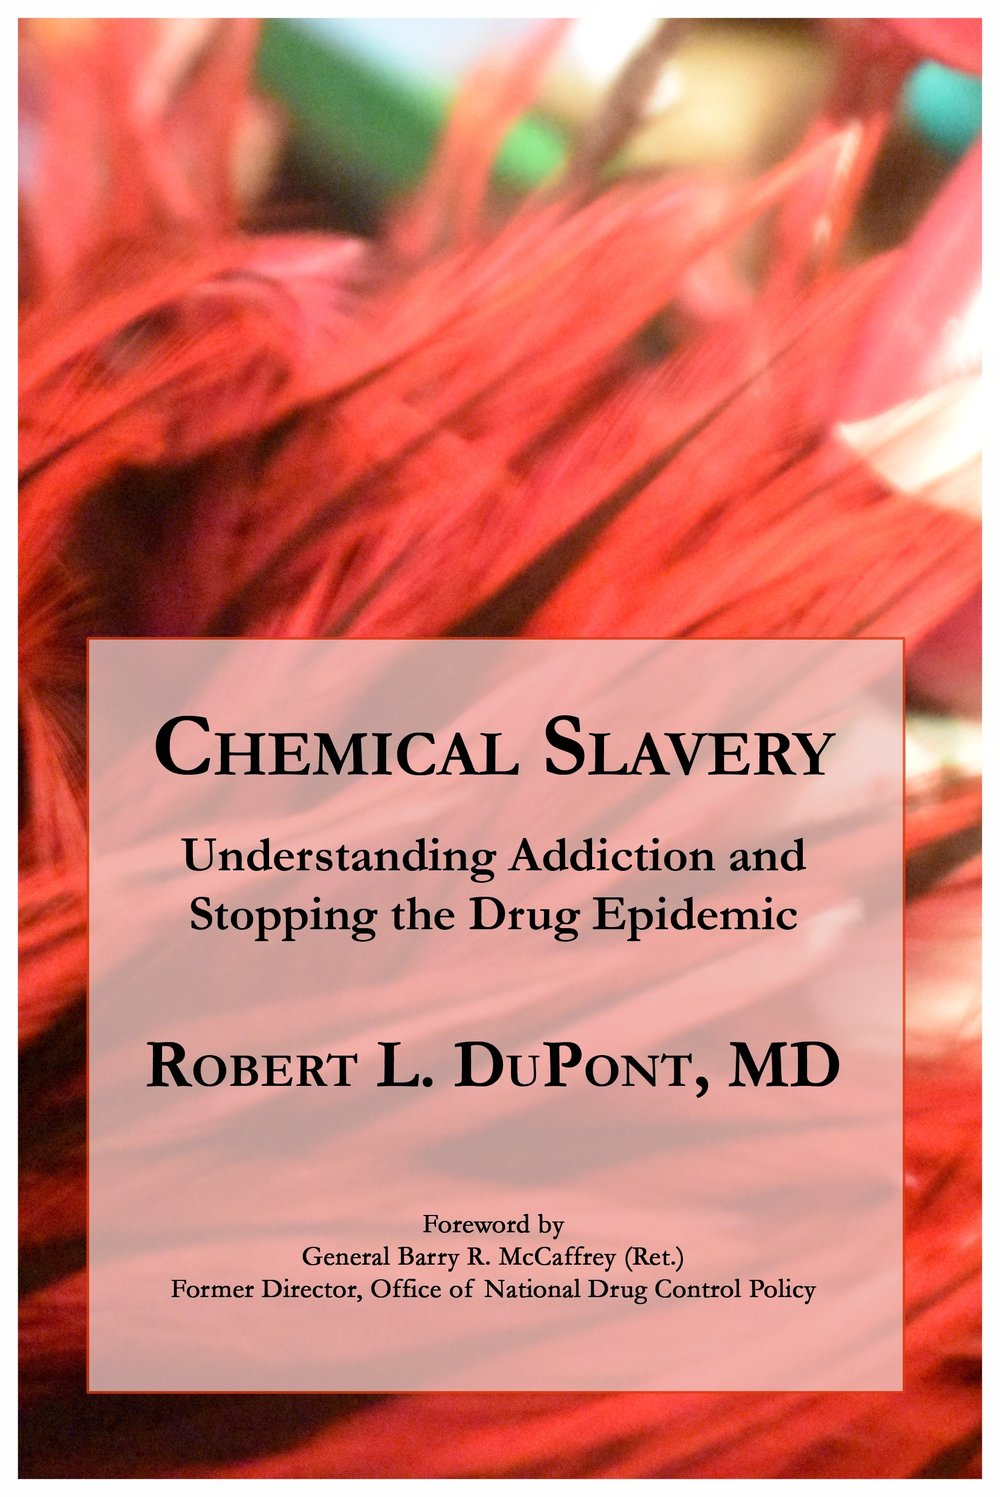 Chemical_Slavery_Book_Cover.jpg